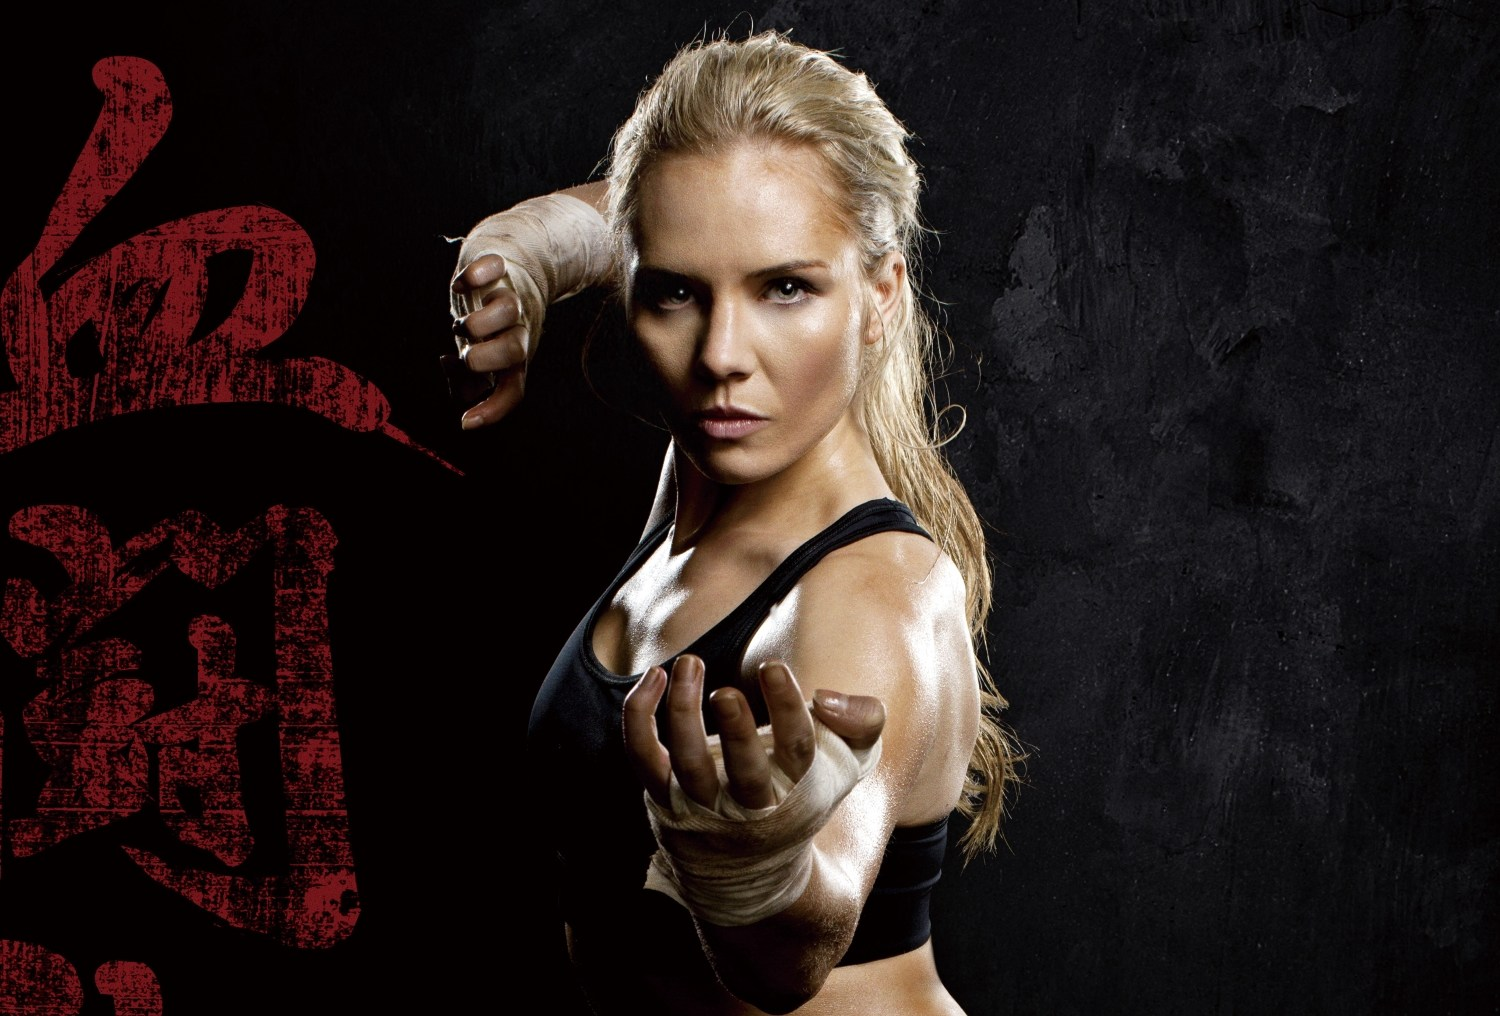 Girl Madness Wallpaper New Lady Bloodfight Trailer Kill Them All Action A